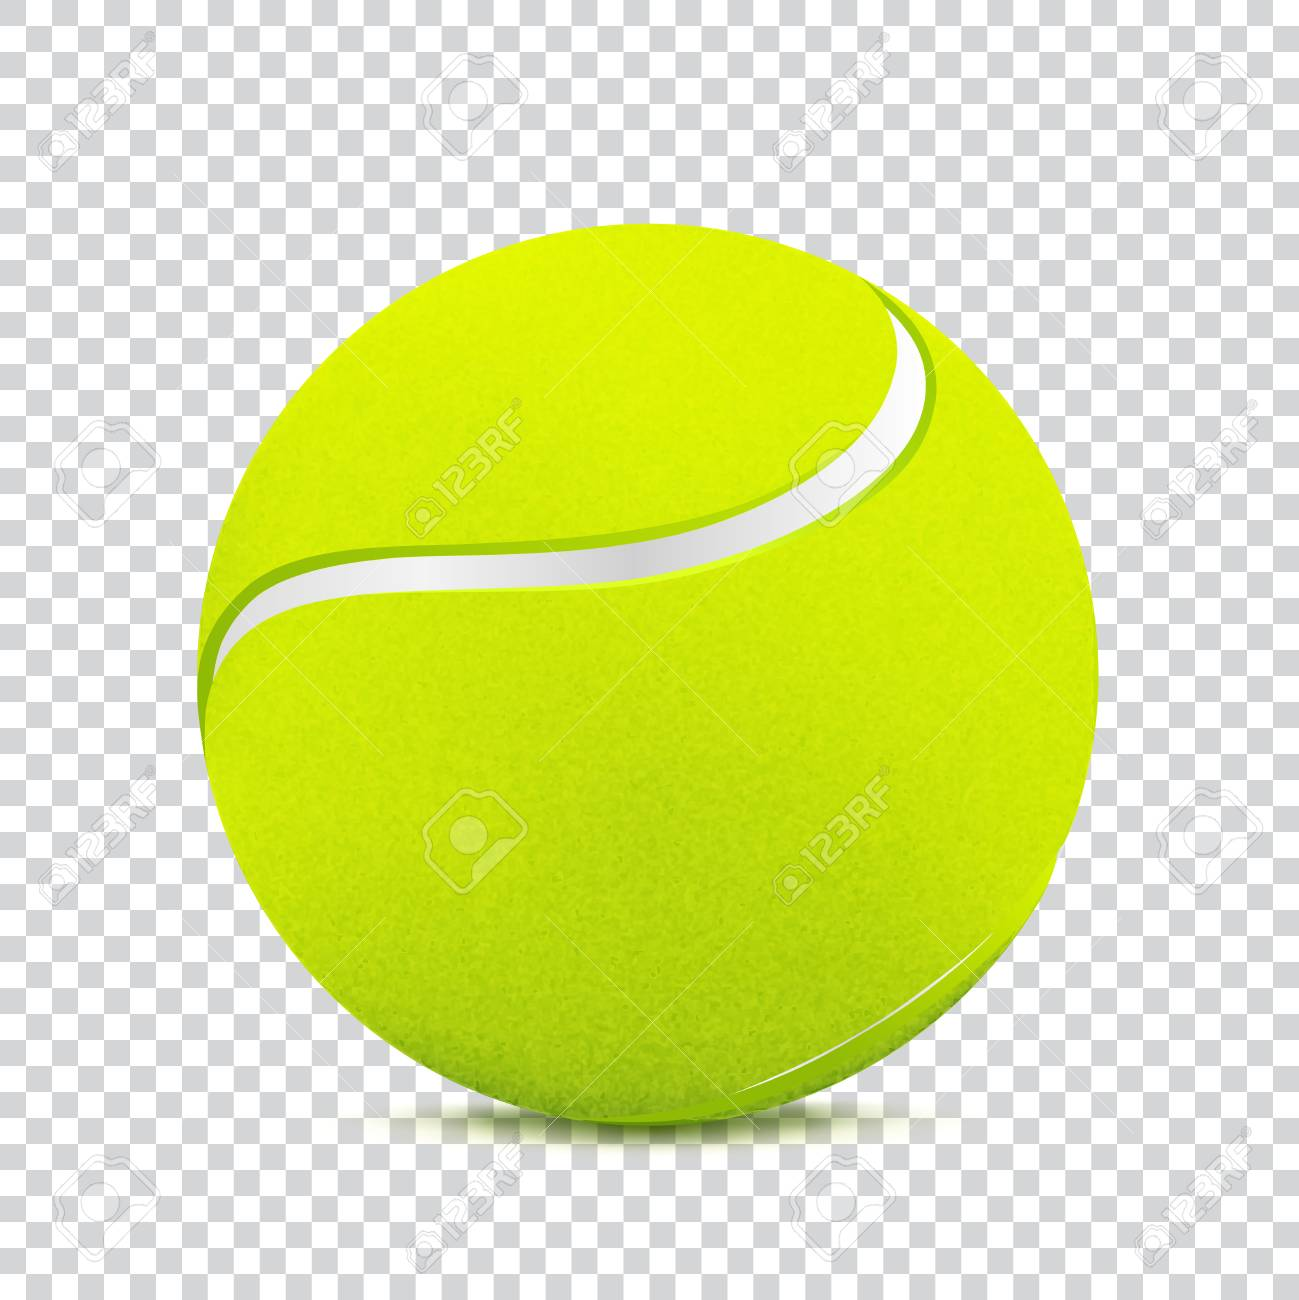 tennis ball on transparent background royalty free cliparts vectors rh 123rf com tennis ball vector free download tennis ball vector art